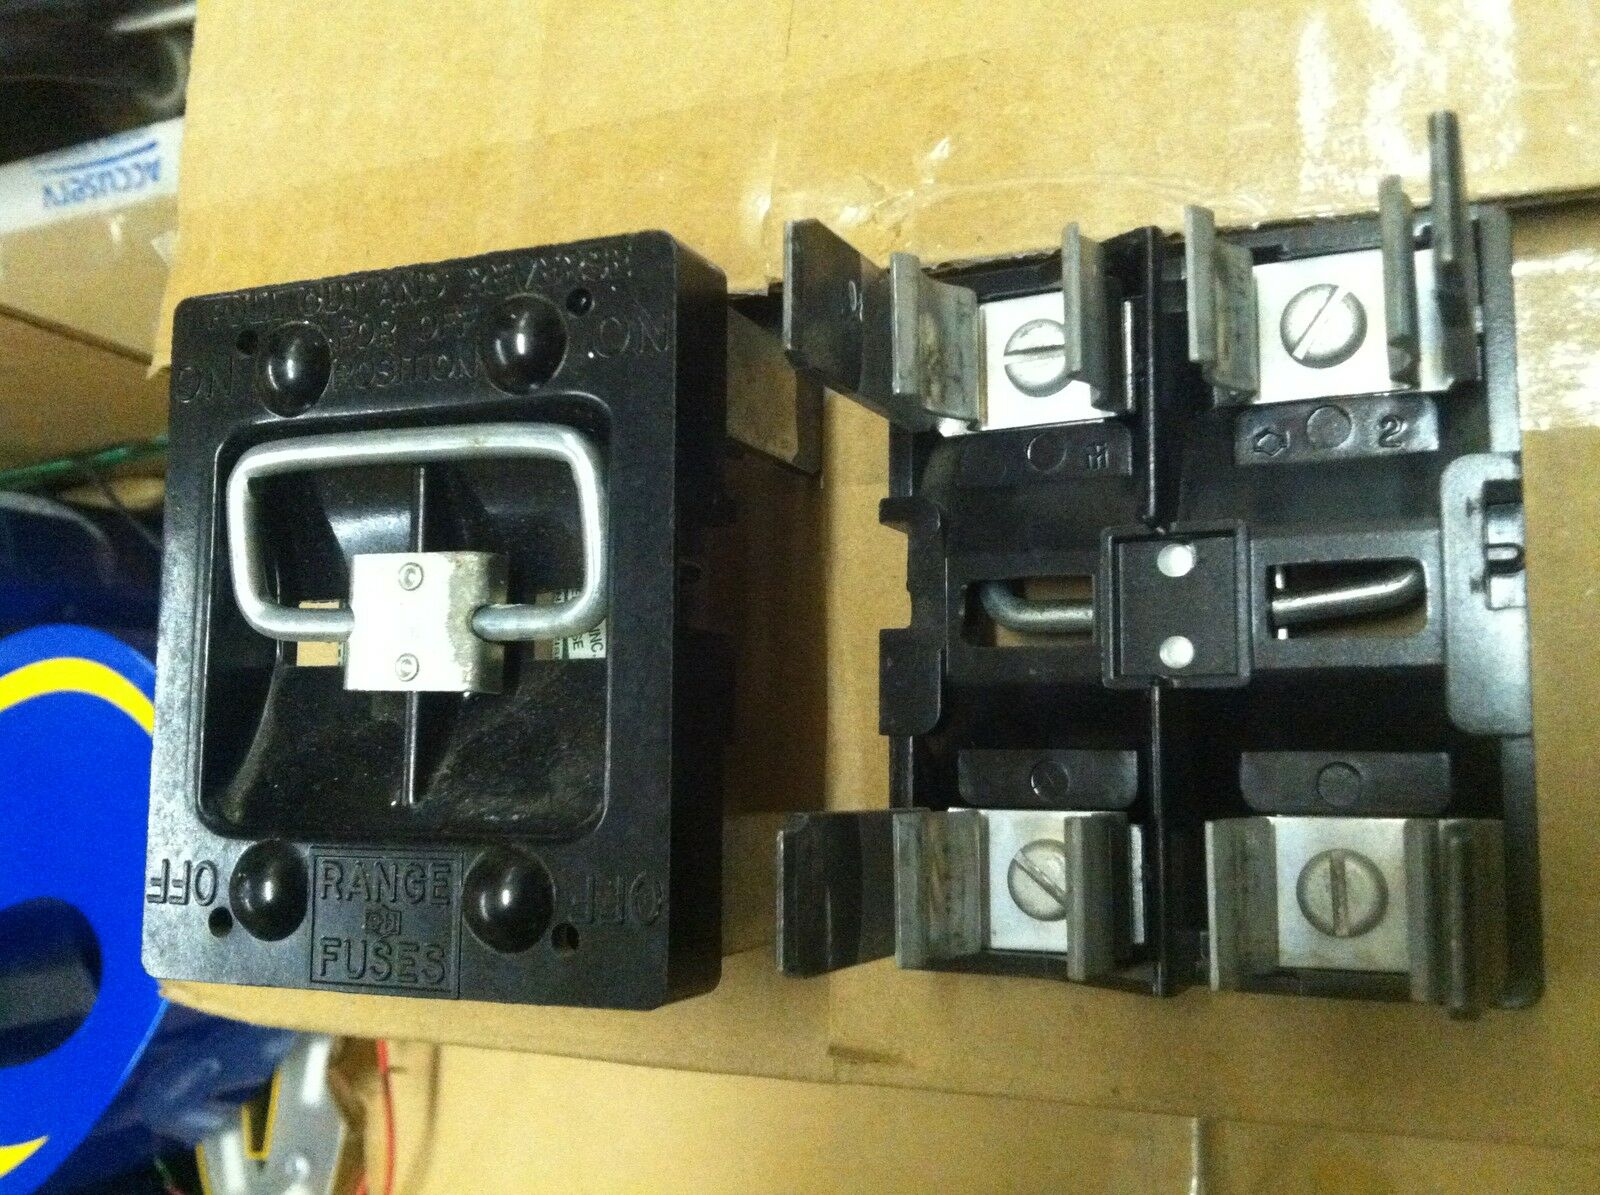 Cutler Hammer 60 Amp Range Fuse Panel Pullout Holder 4500 Vintage Box 1 Of 1only Available